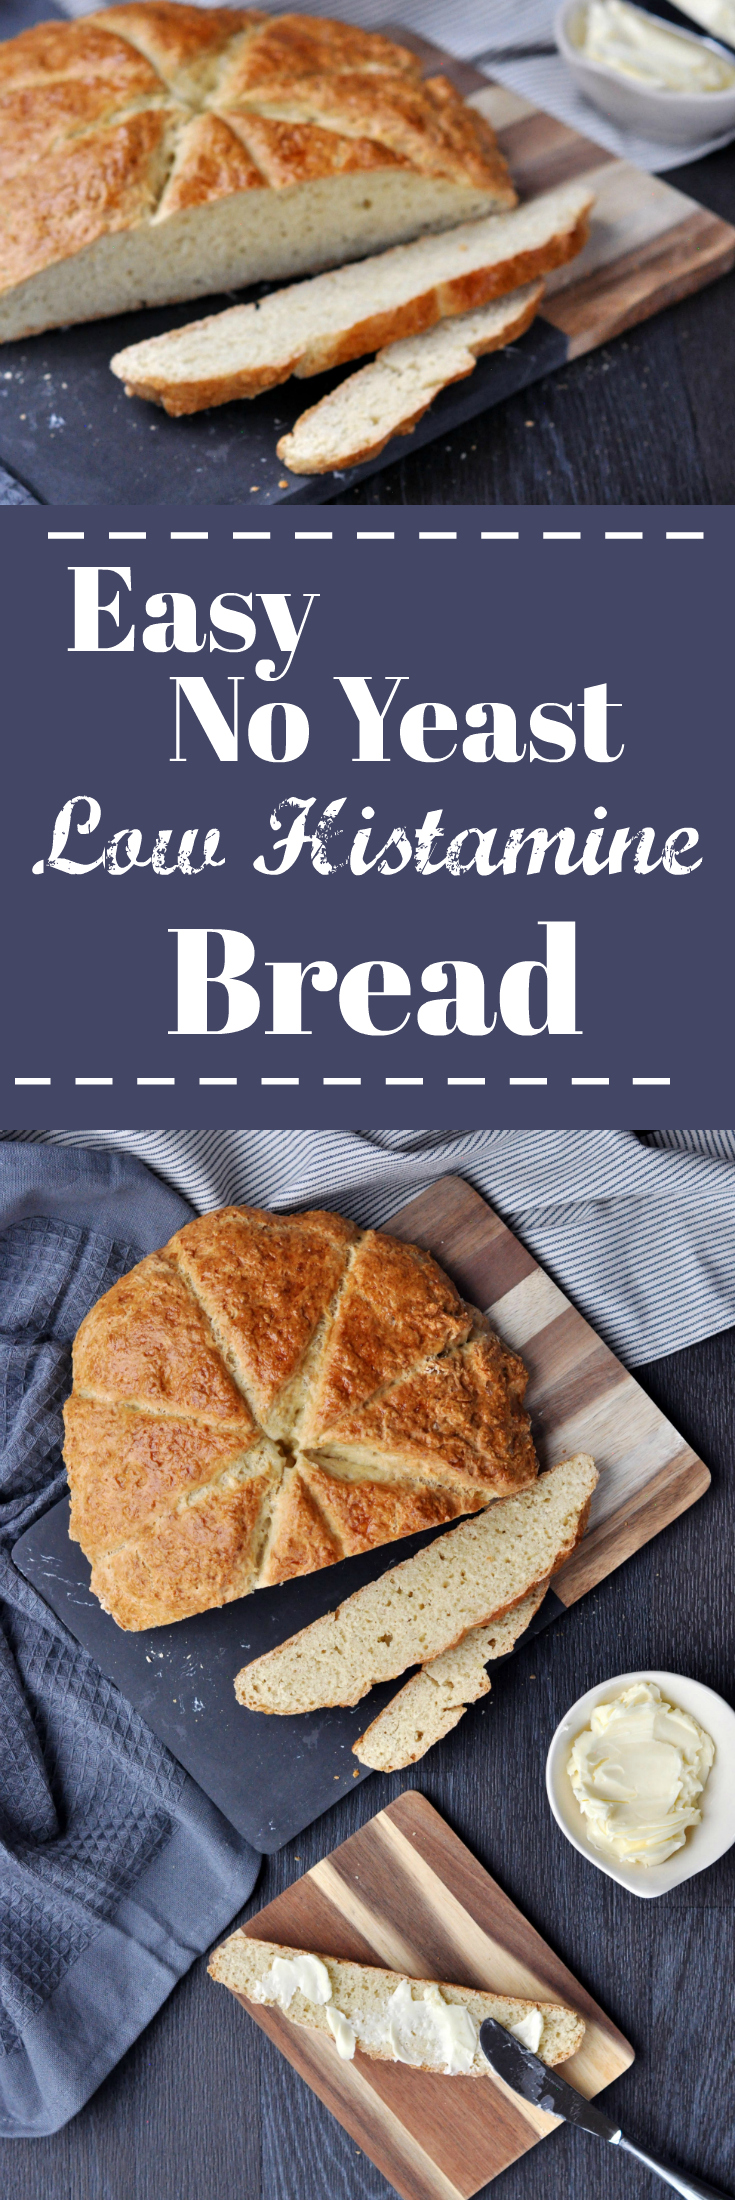 Easy No Yeast Low Histamine Bread - Pin it :)